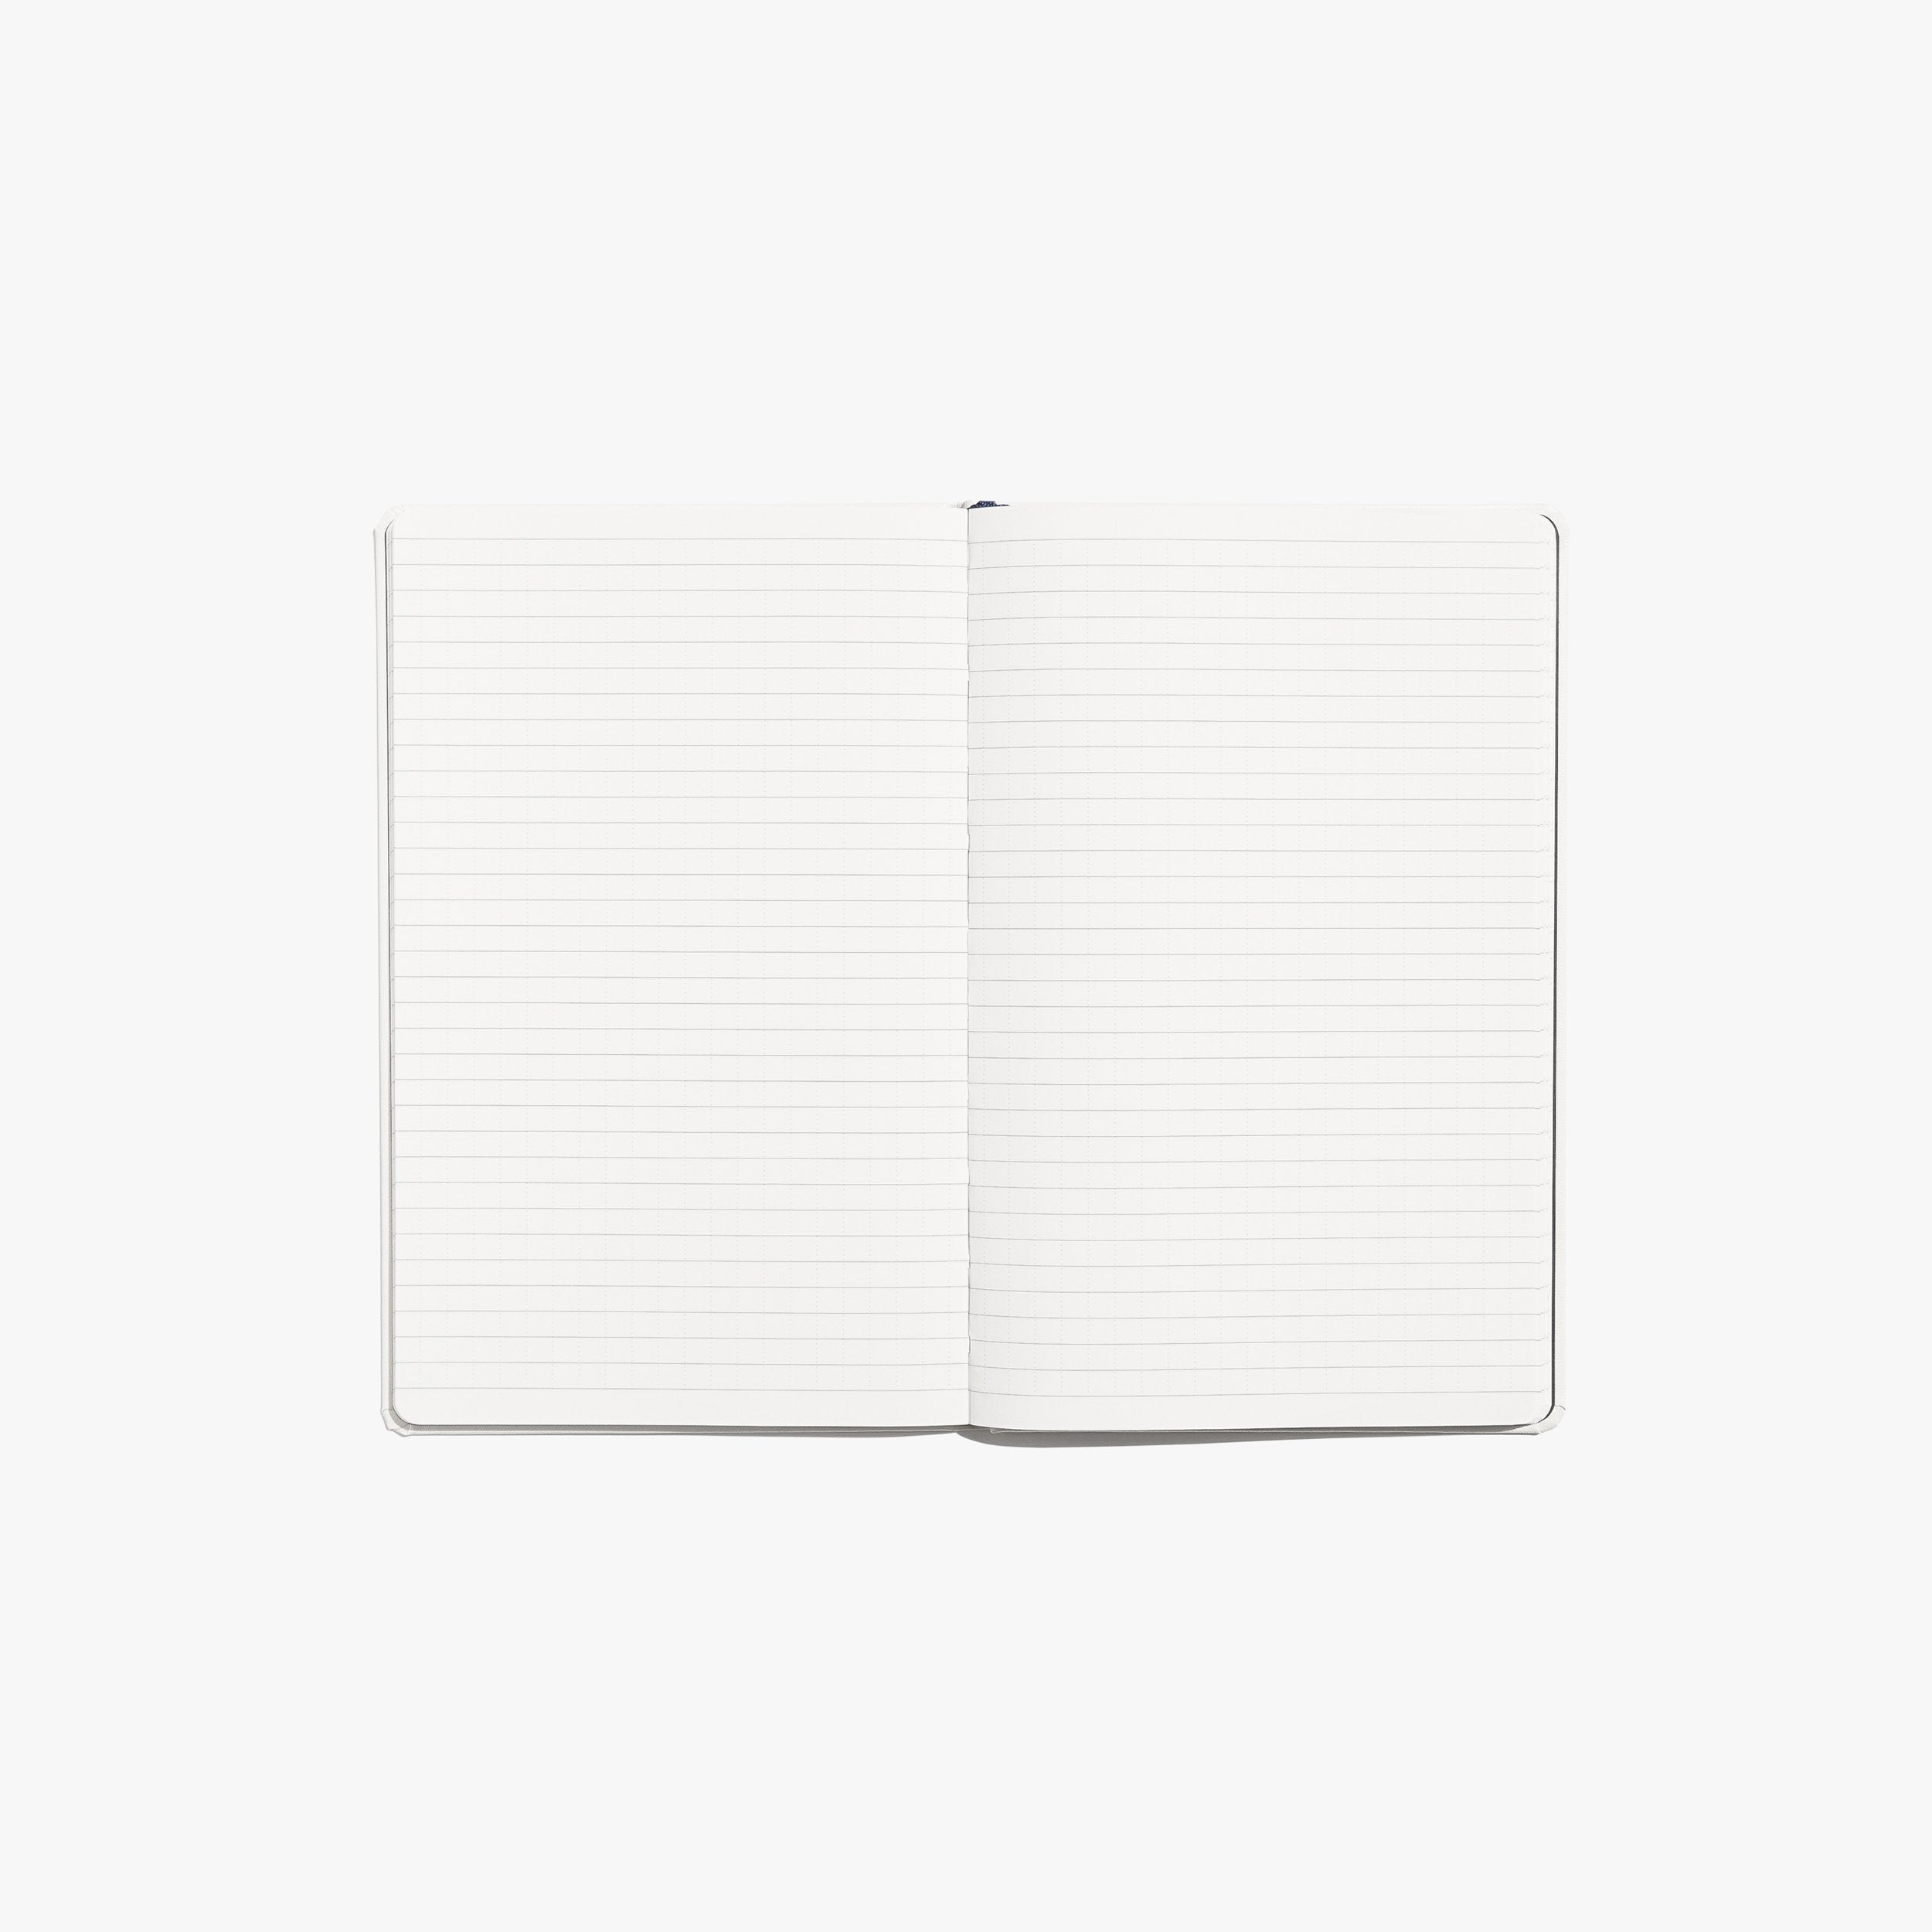 Construction Notebook - White